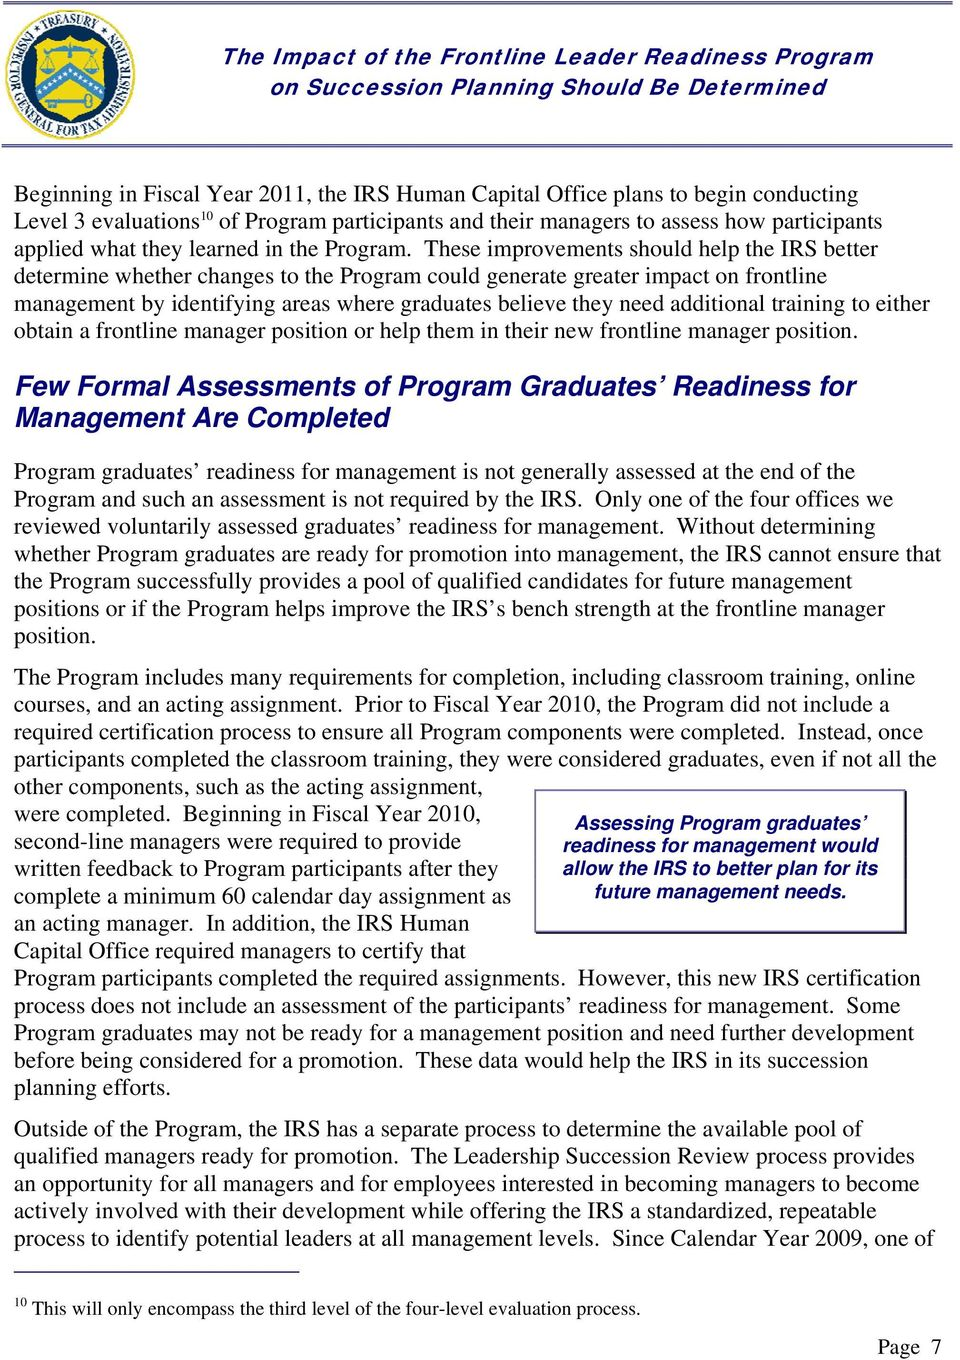 These improvements should help the IRS better determine whether changes to the Program could generate greater impact on frontline management by identifying areas where graduates believe they need